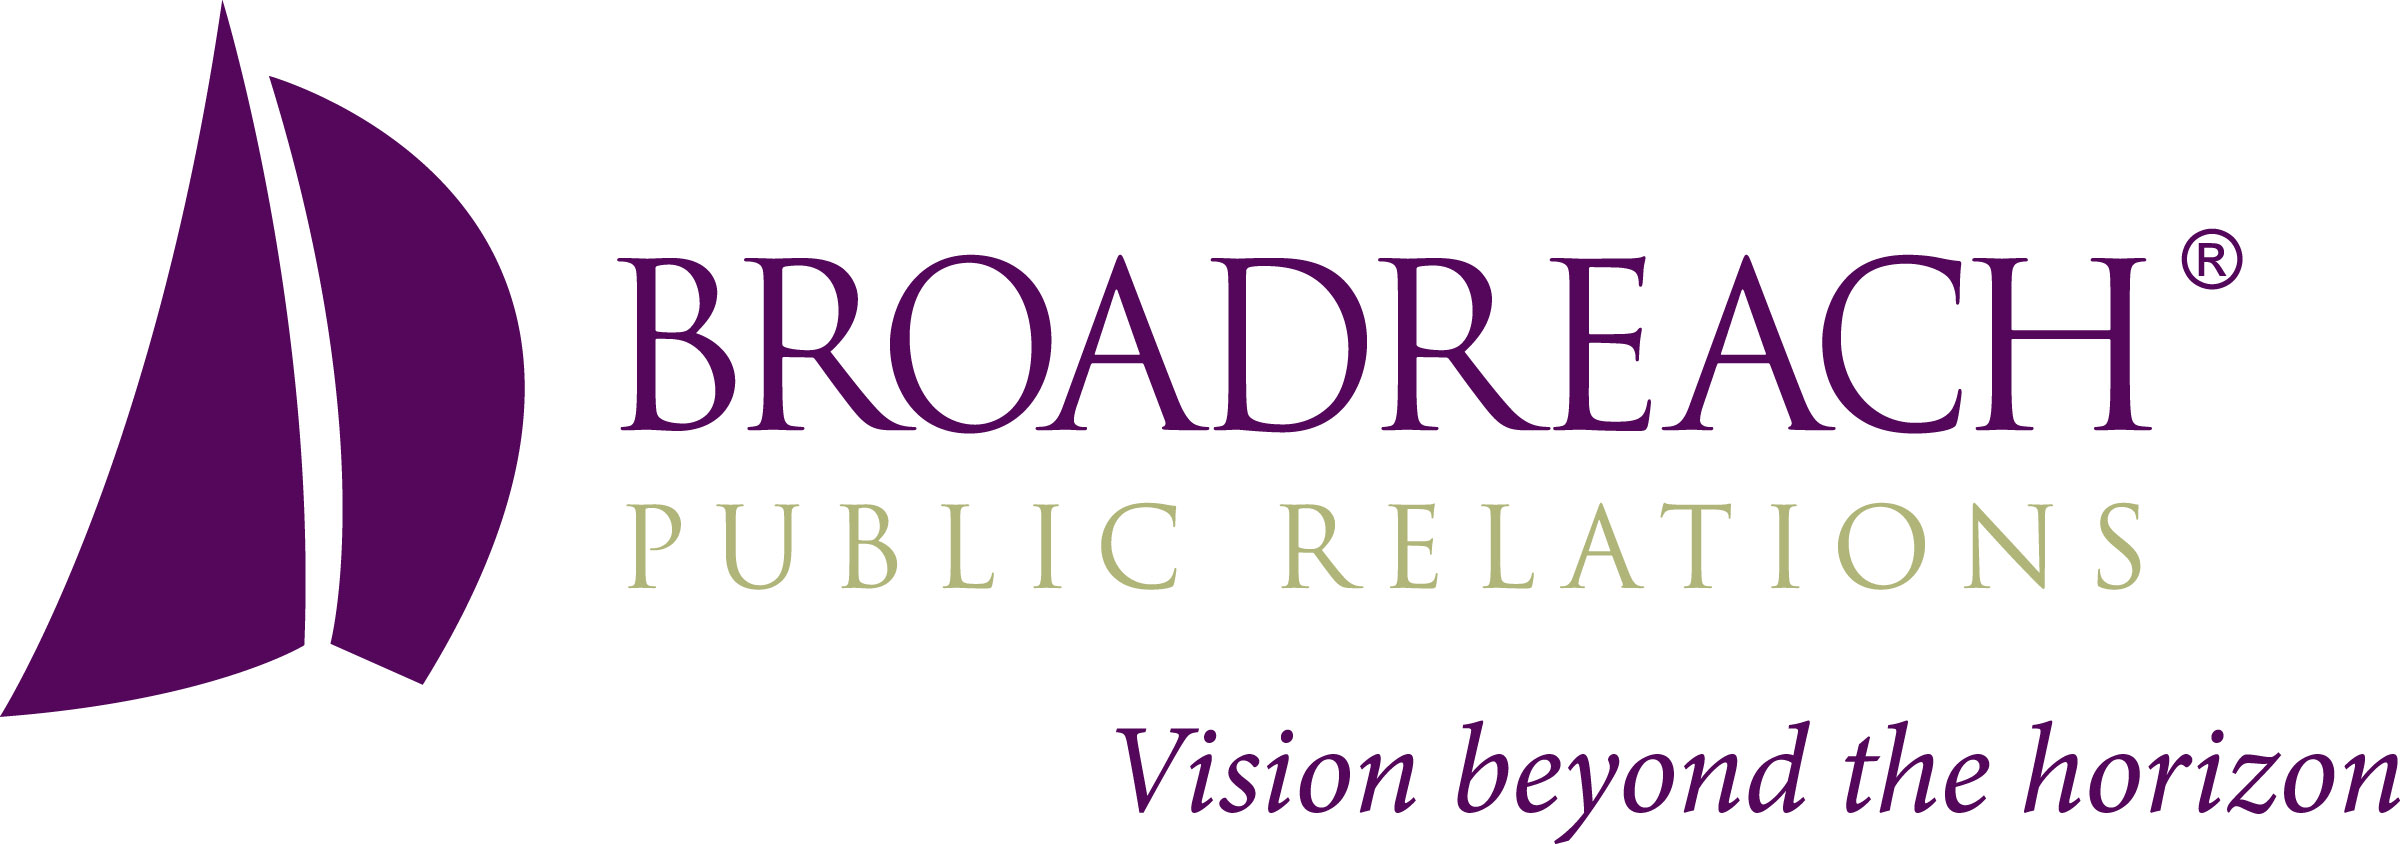 Broadreach Public Relations